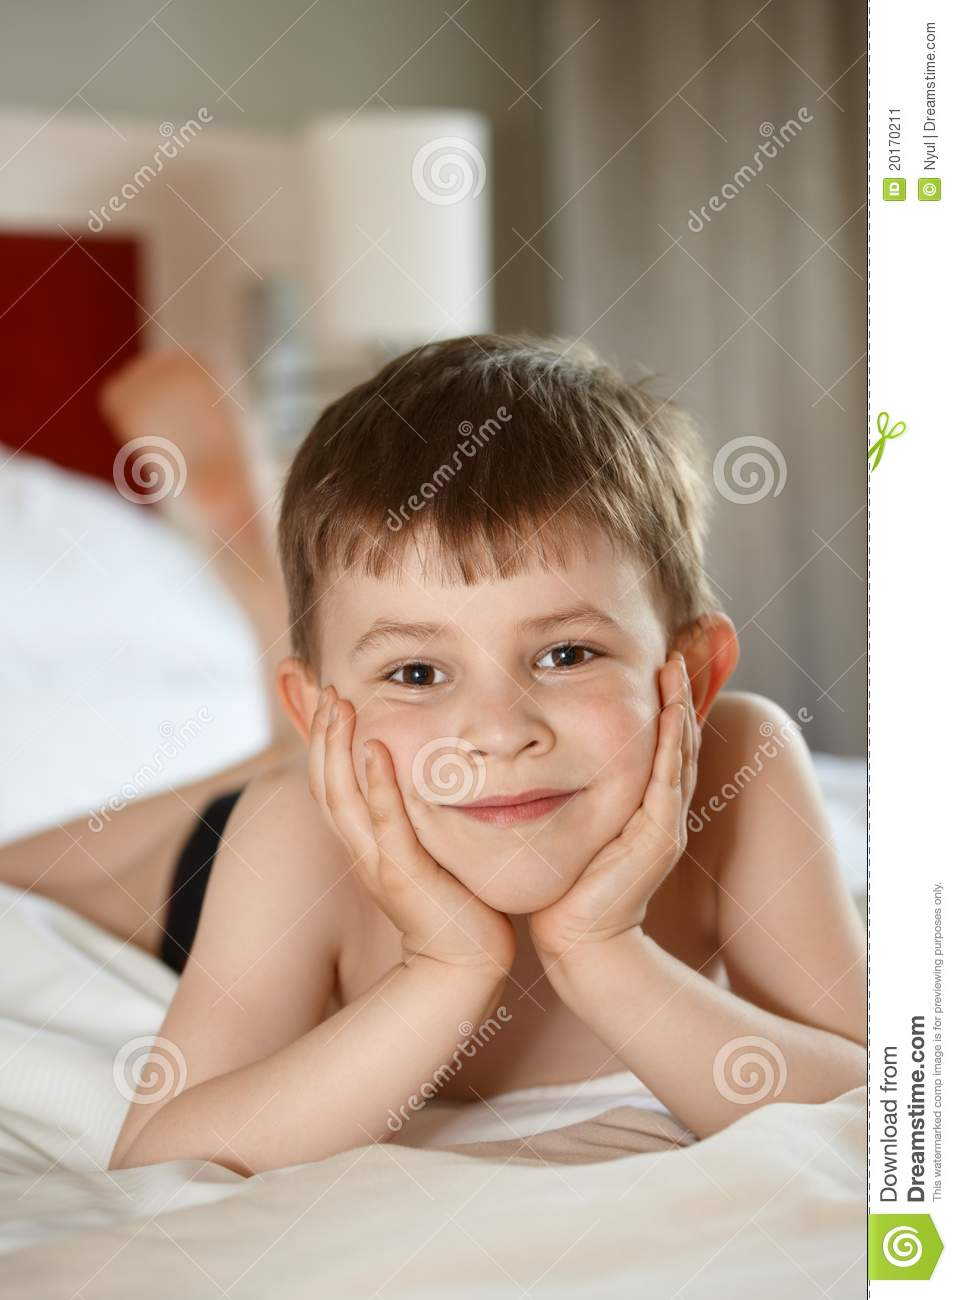 Little Boy Laying On Bed Stock Image - Image: 20170211